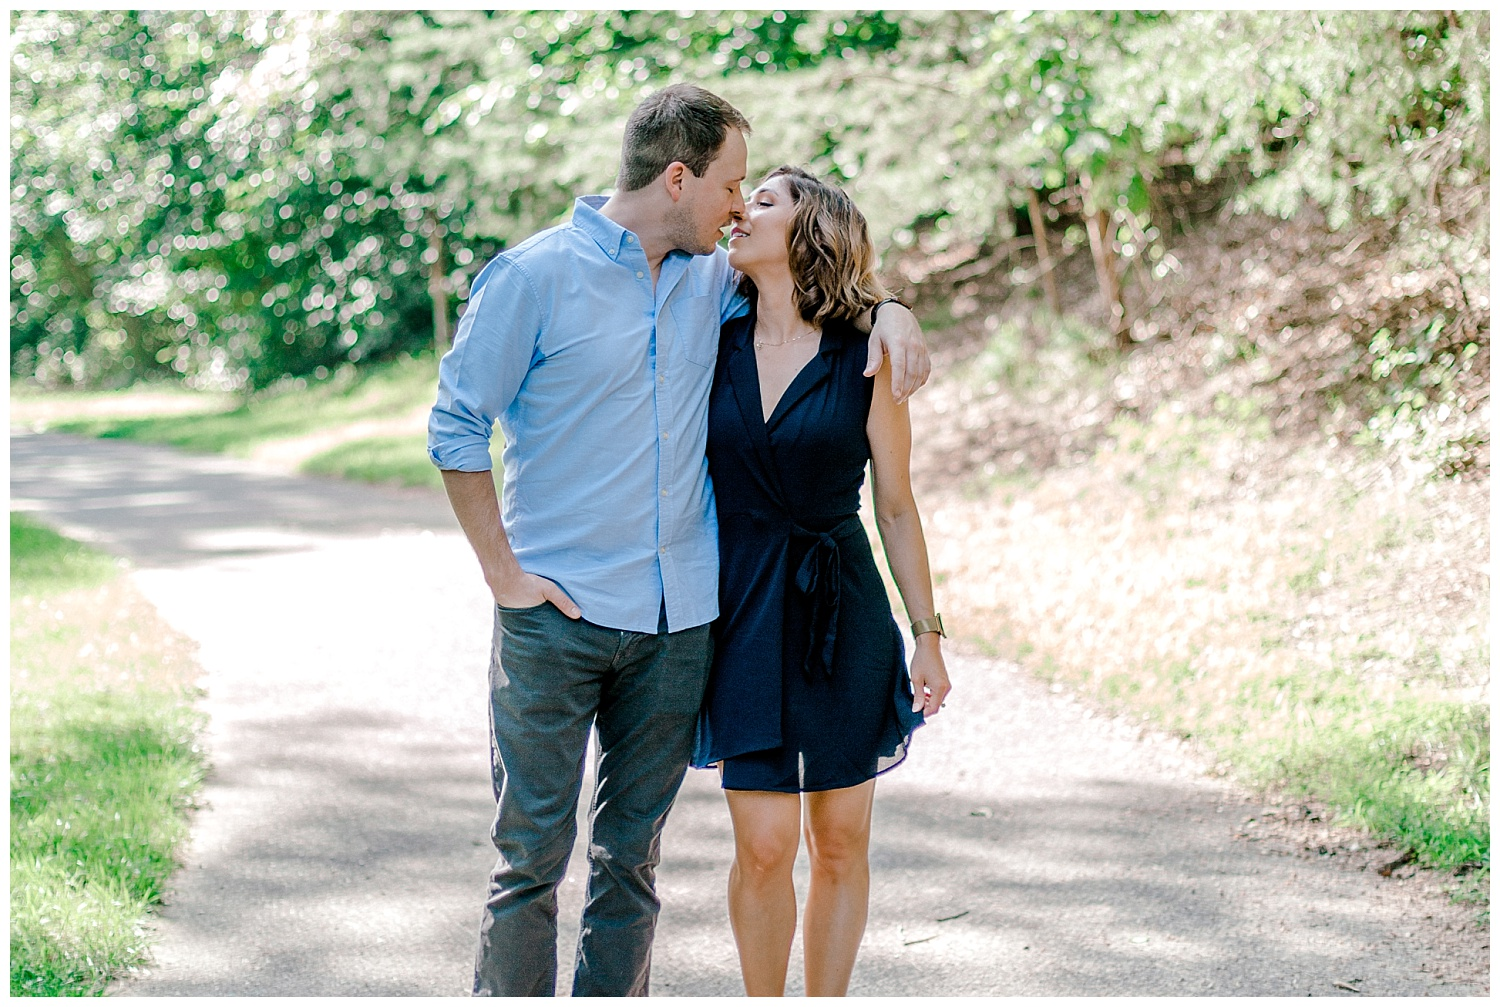 Wooded sunny Summertime engagement session in Odenton Maryland by Pennsylvania based wedding and lifestyle photographer Lytle photography_0005.jpg